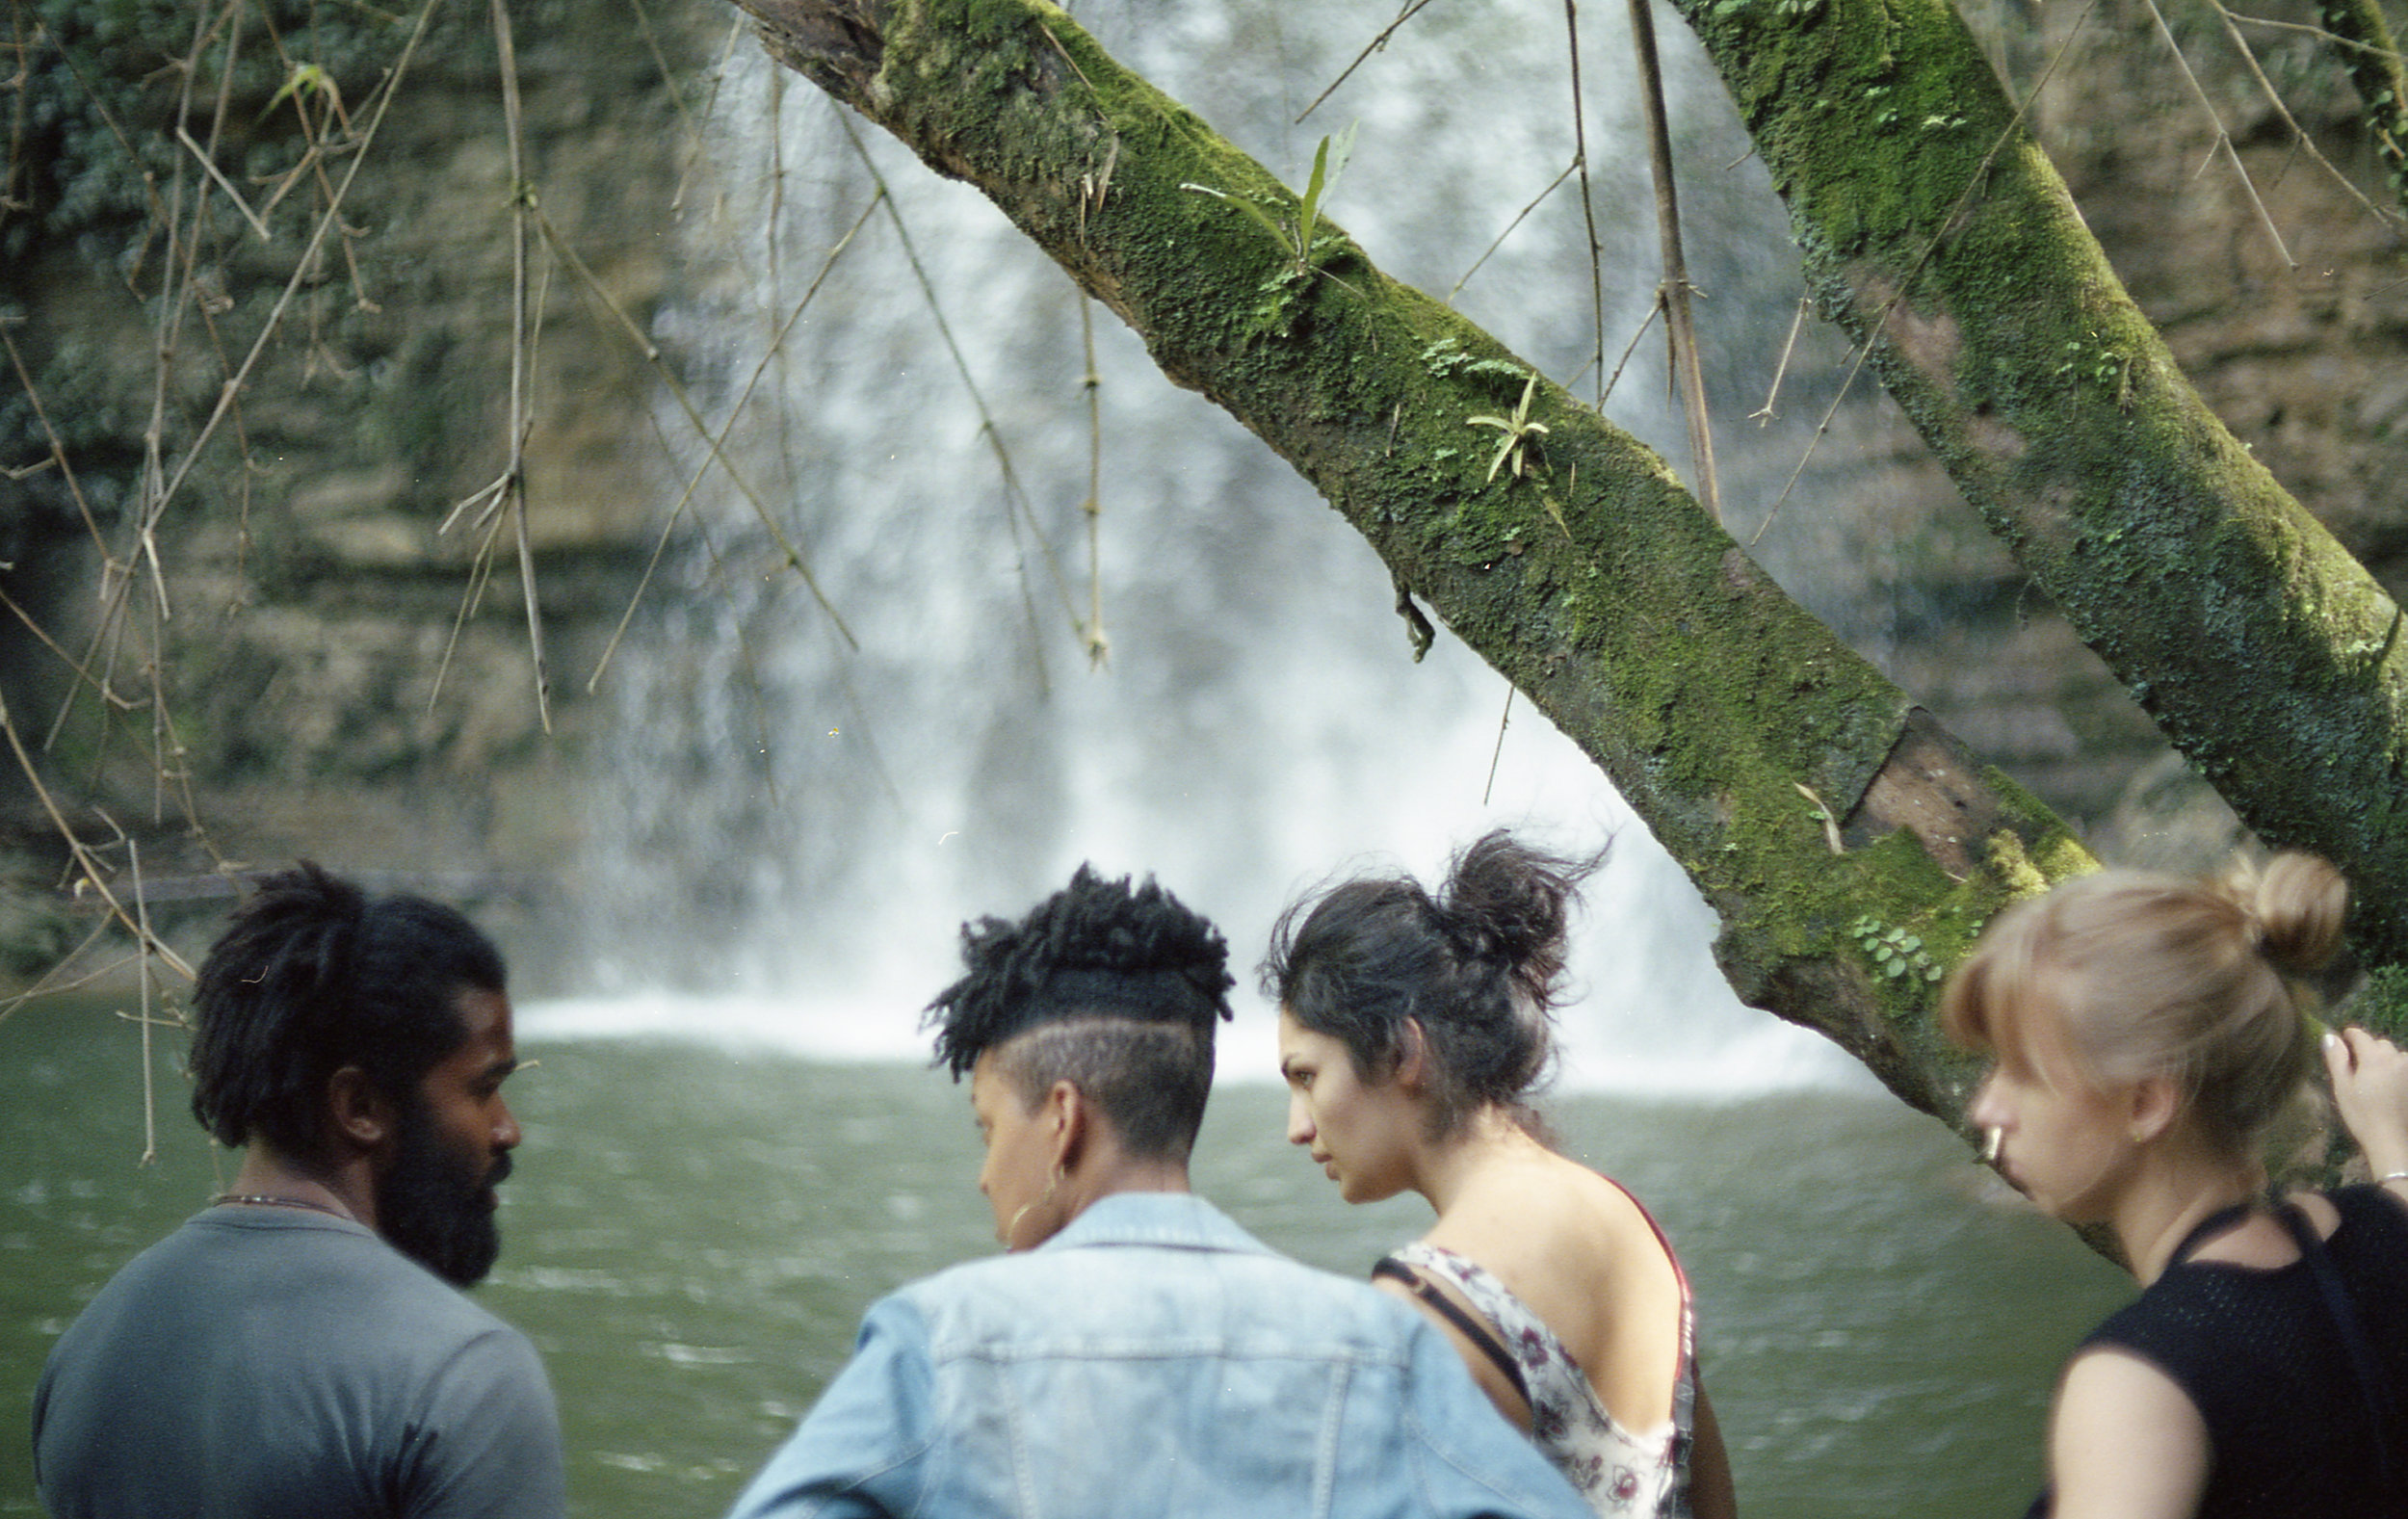 Brian Moore (Additional AD), Sontenish (Director), Zamarin Wahdat (DP), and Dominica Eriksen (AC) during location scout at the waterfall.